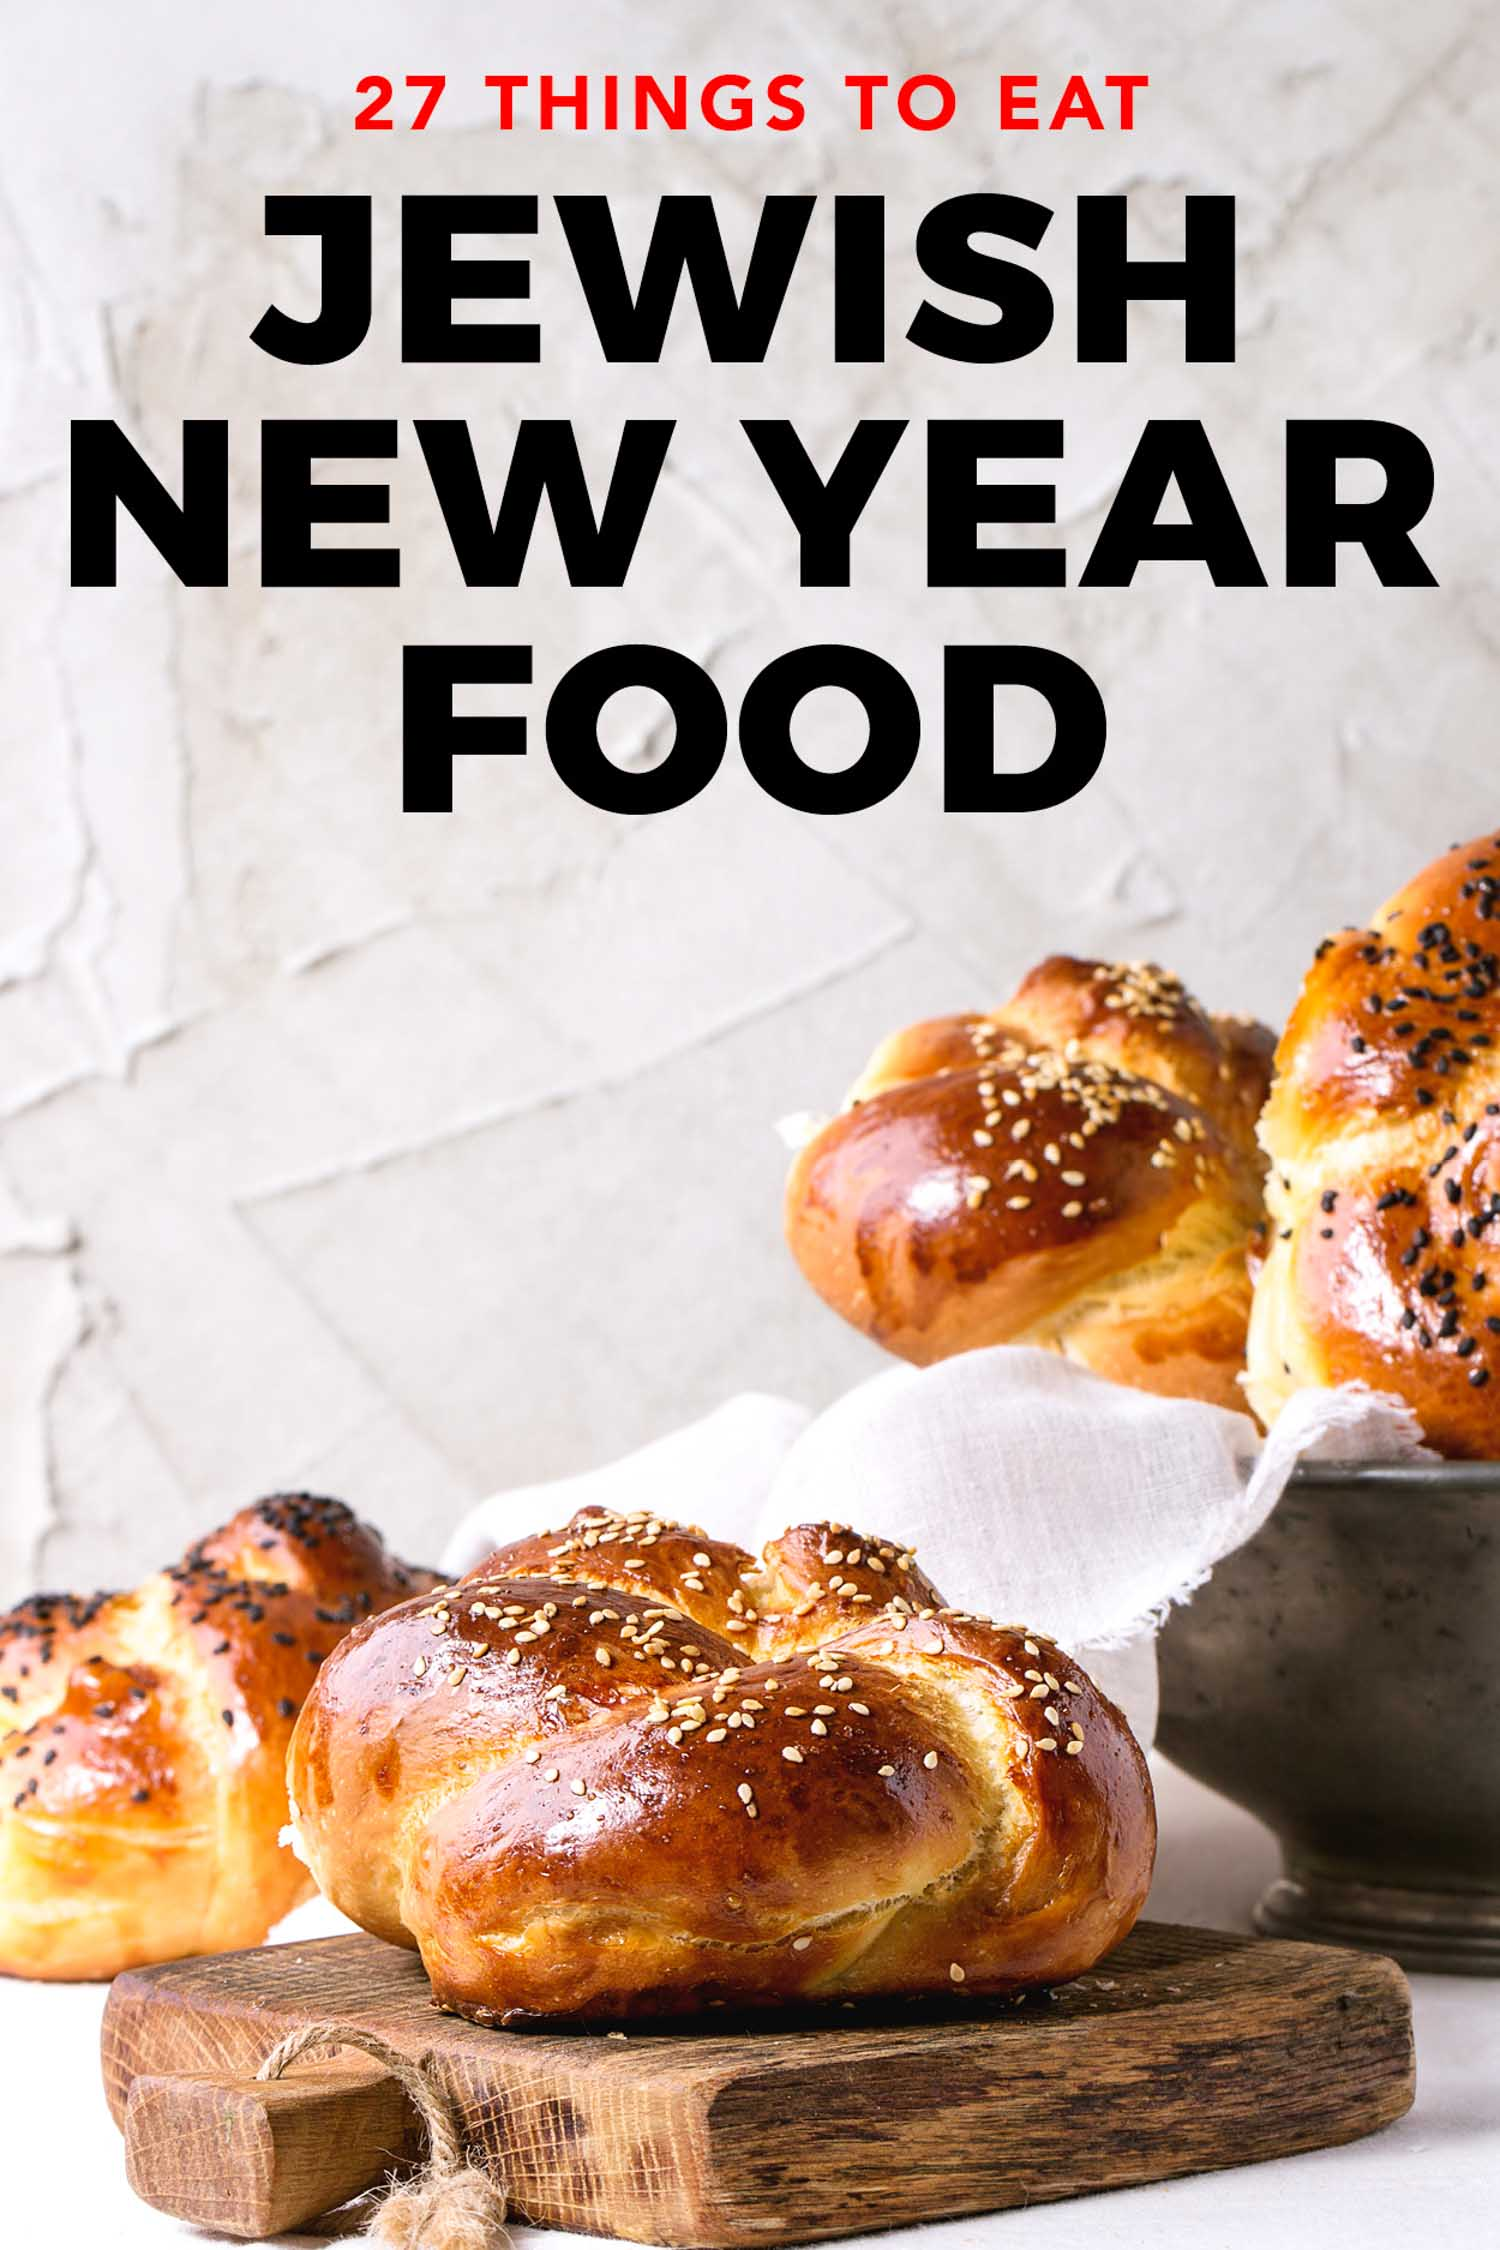 Challah bread with title that says Jewish new year food